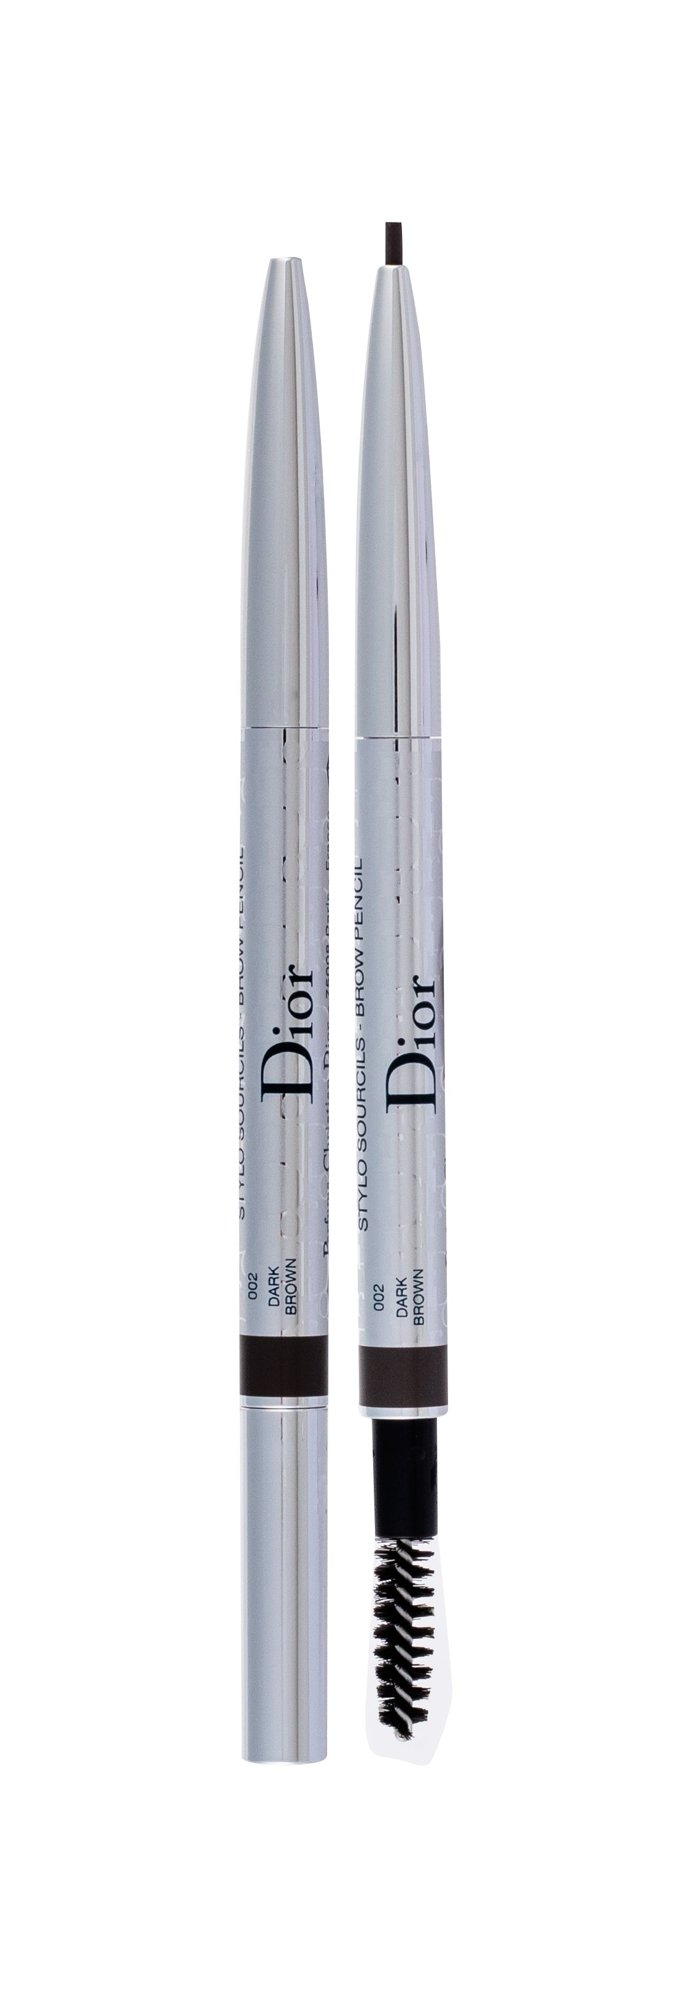 Christian Dior Diorshow Eyebrow Pencil 0,09ml 002 Dark Brown